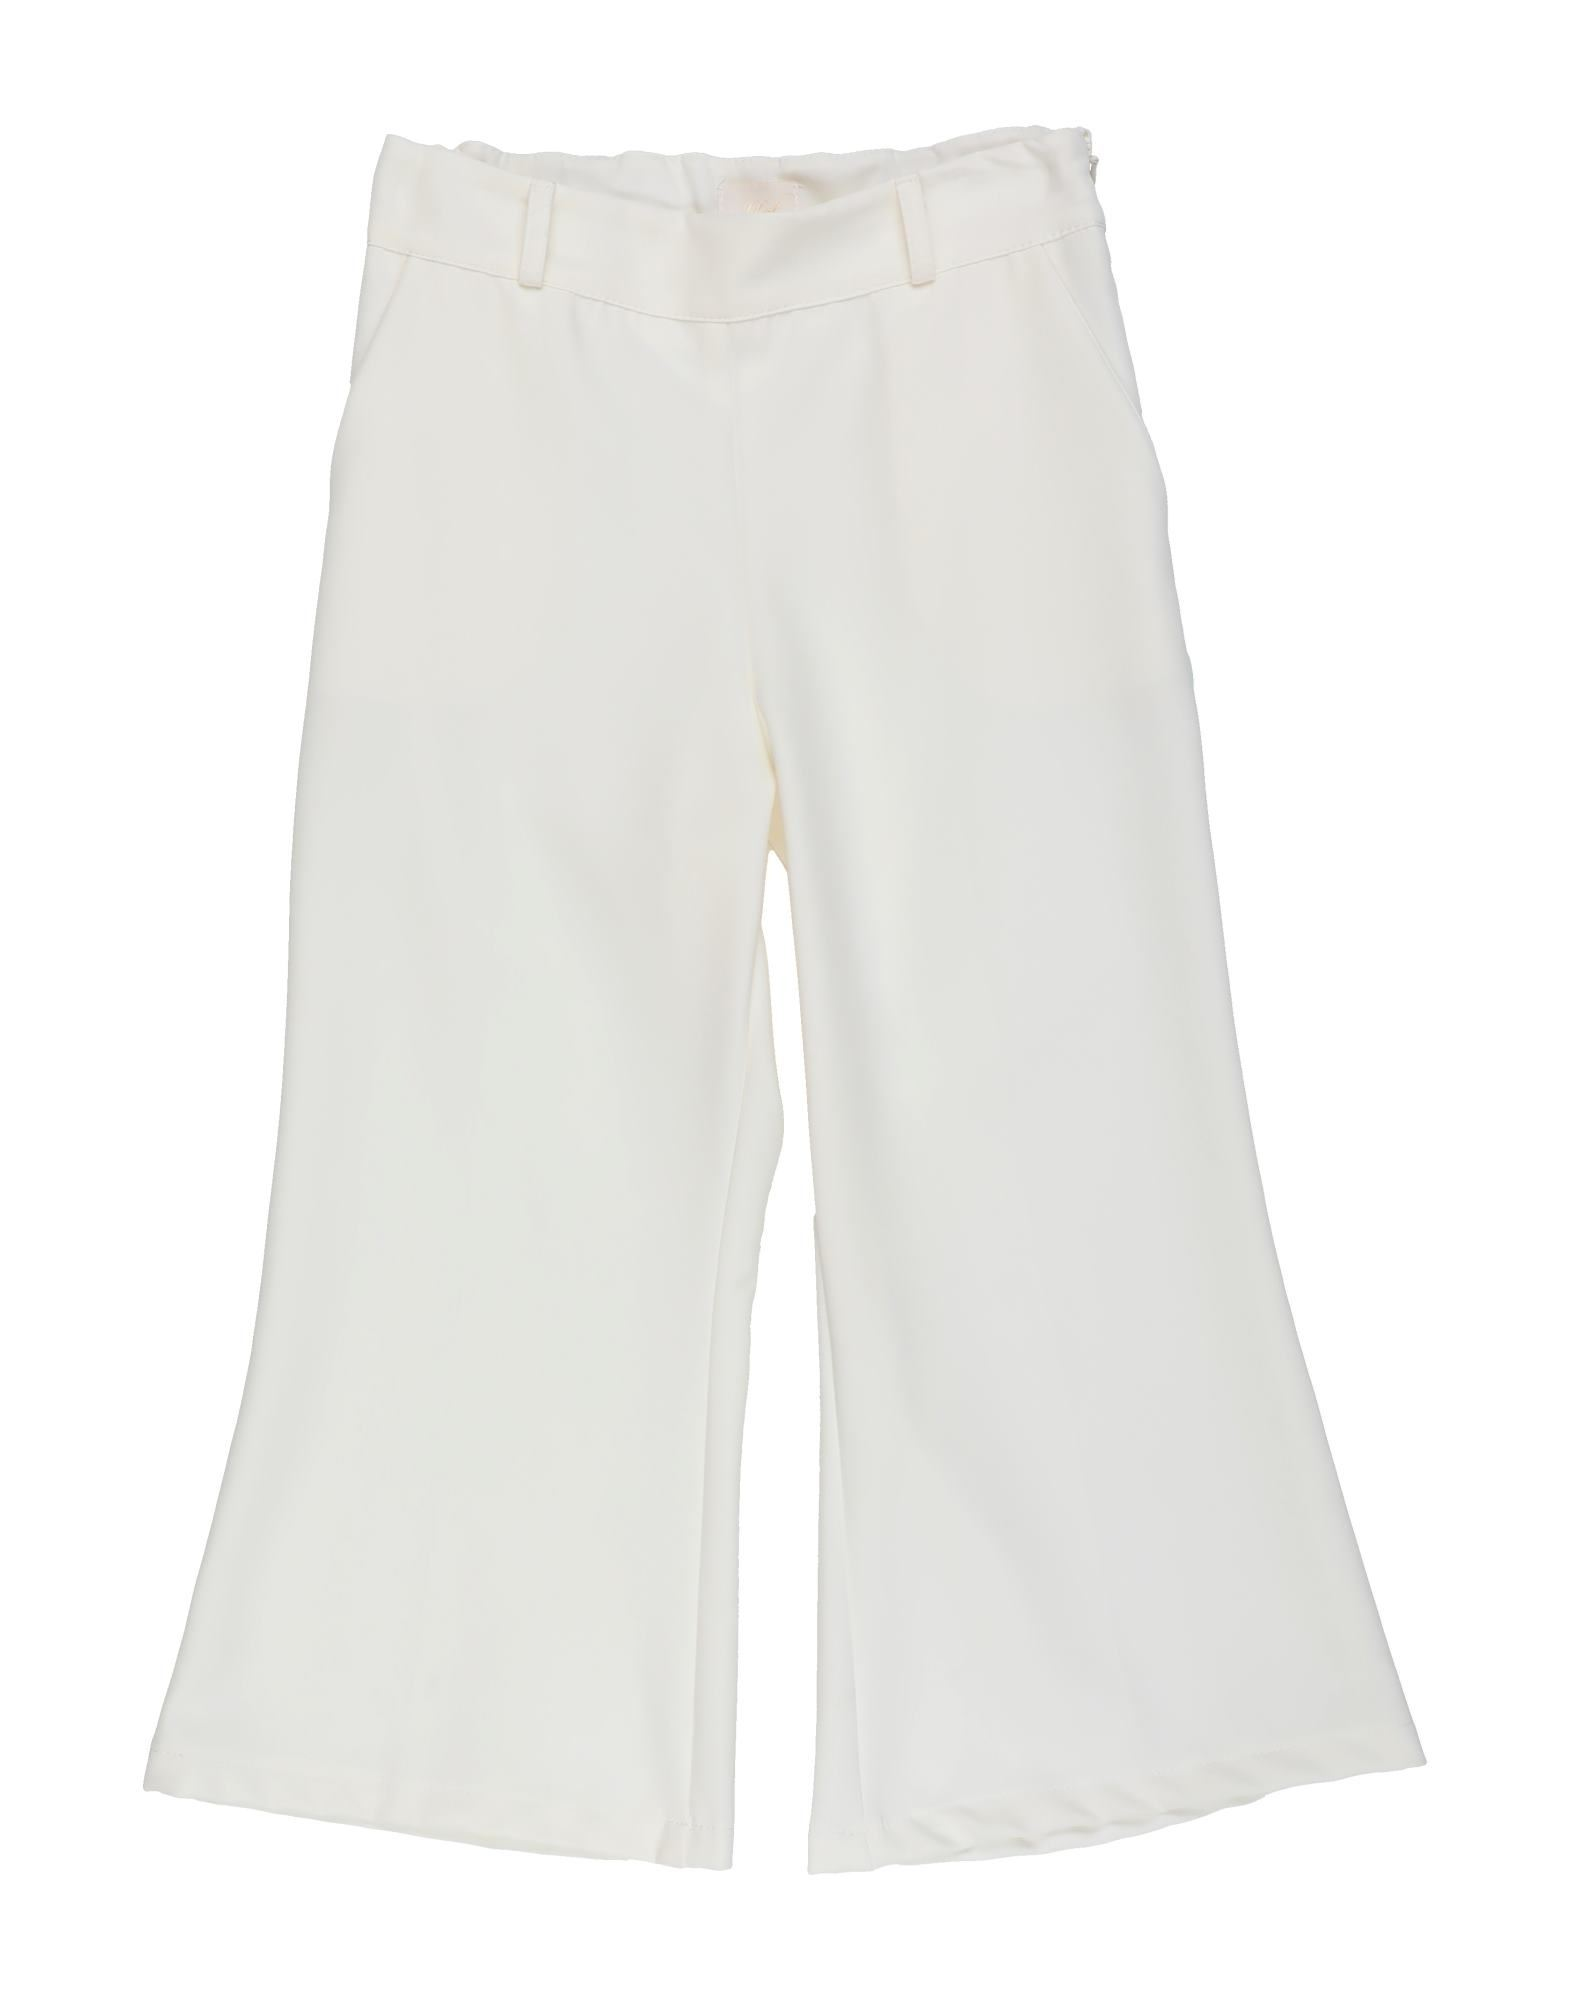 Mef Kids' Casual Pants In White